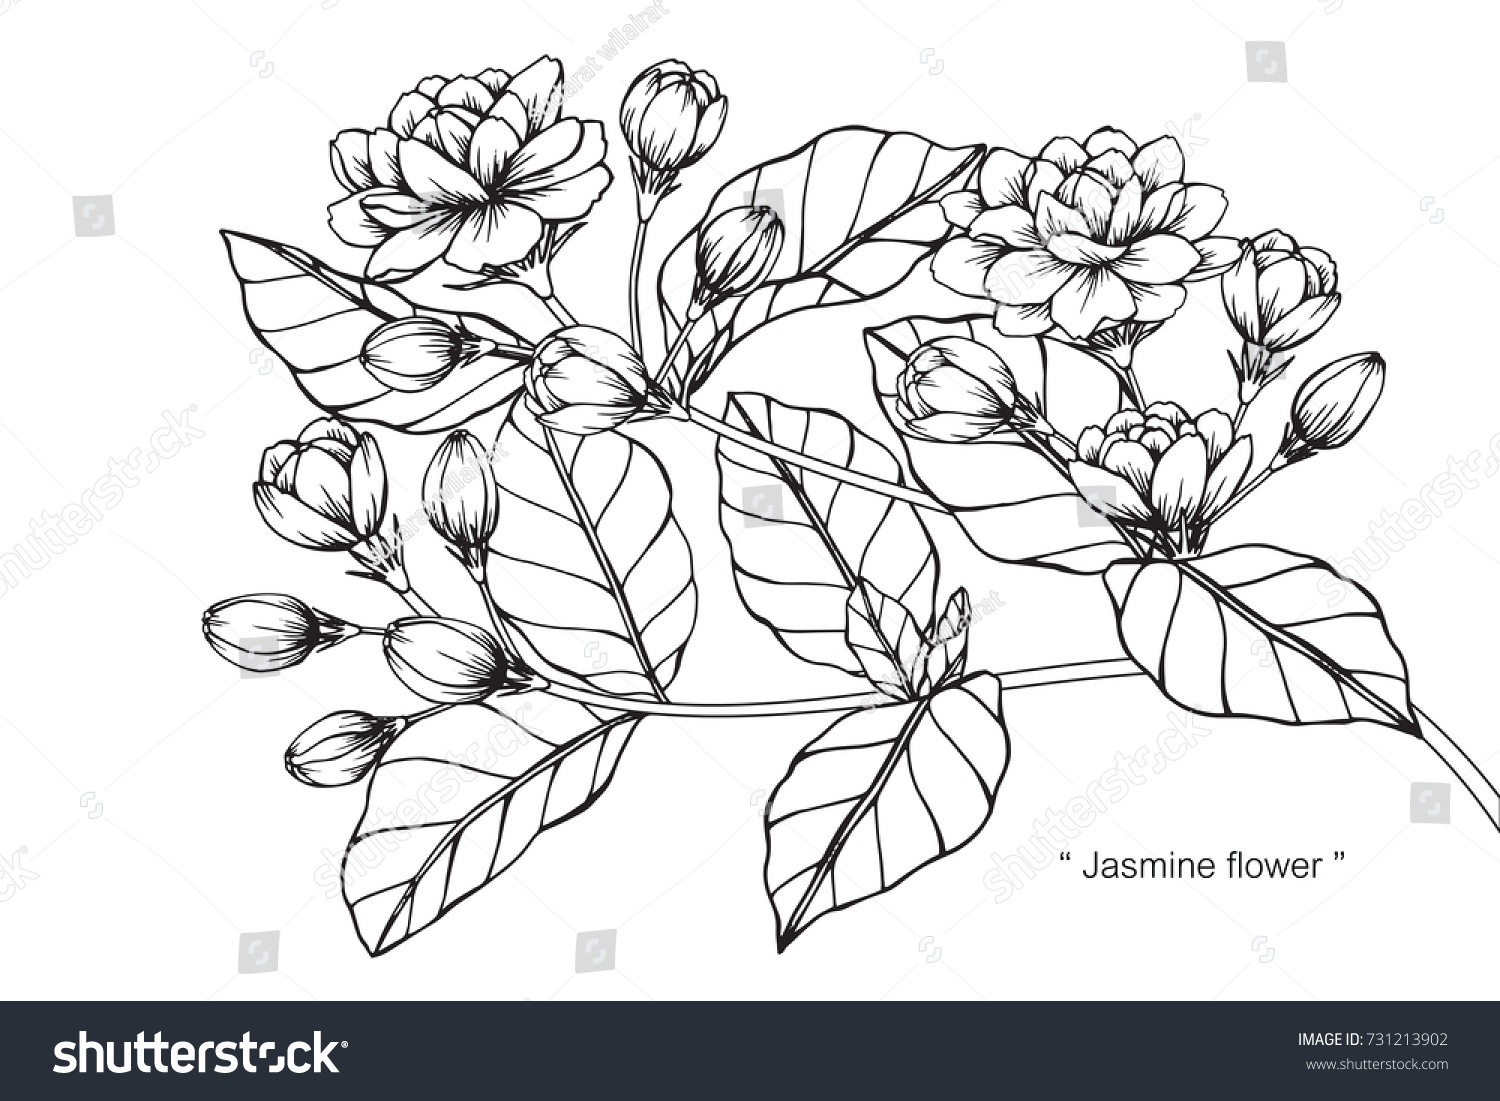 Line Drawing Jasmine Flower : Hand drawing sketch jasmine flower black stock vector